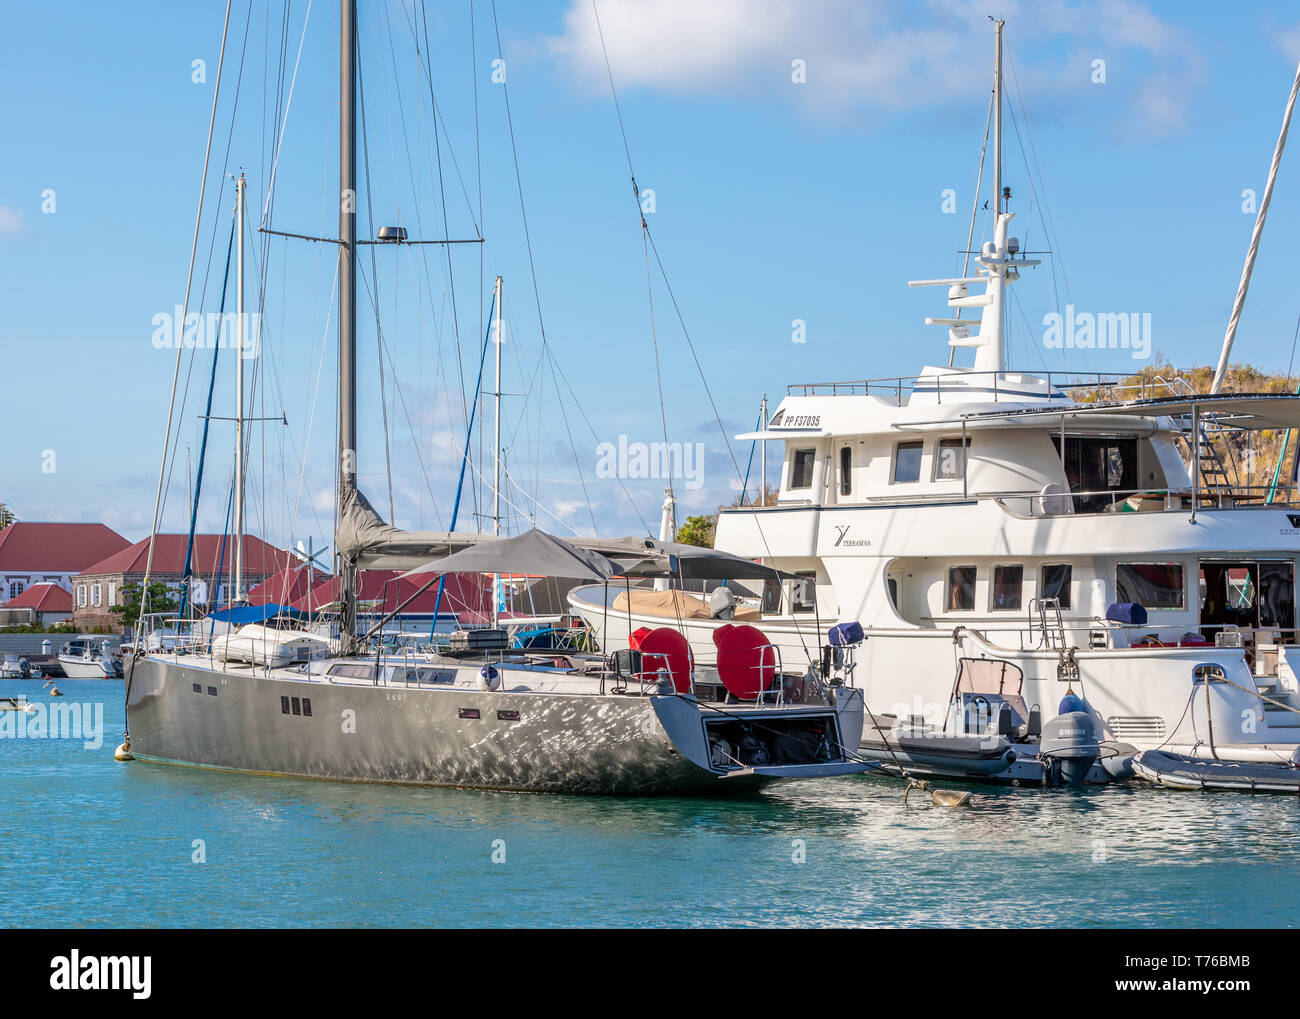 Expensive yachts at mooring in the port of Gustavia, St Barts - Stock Image